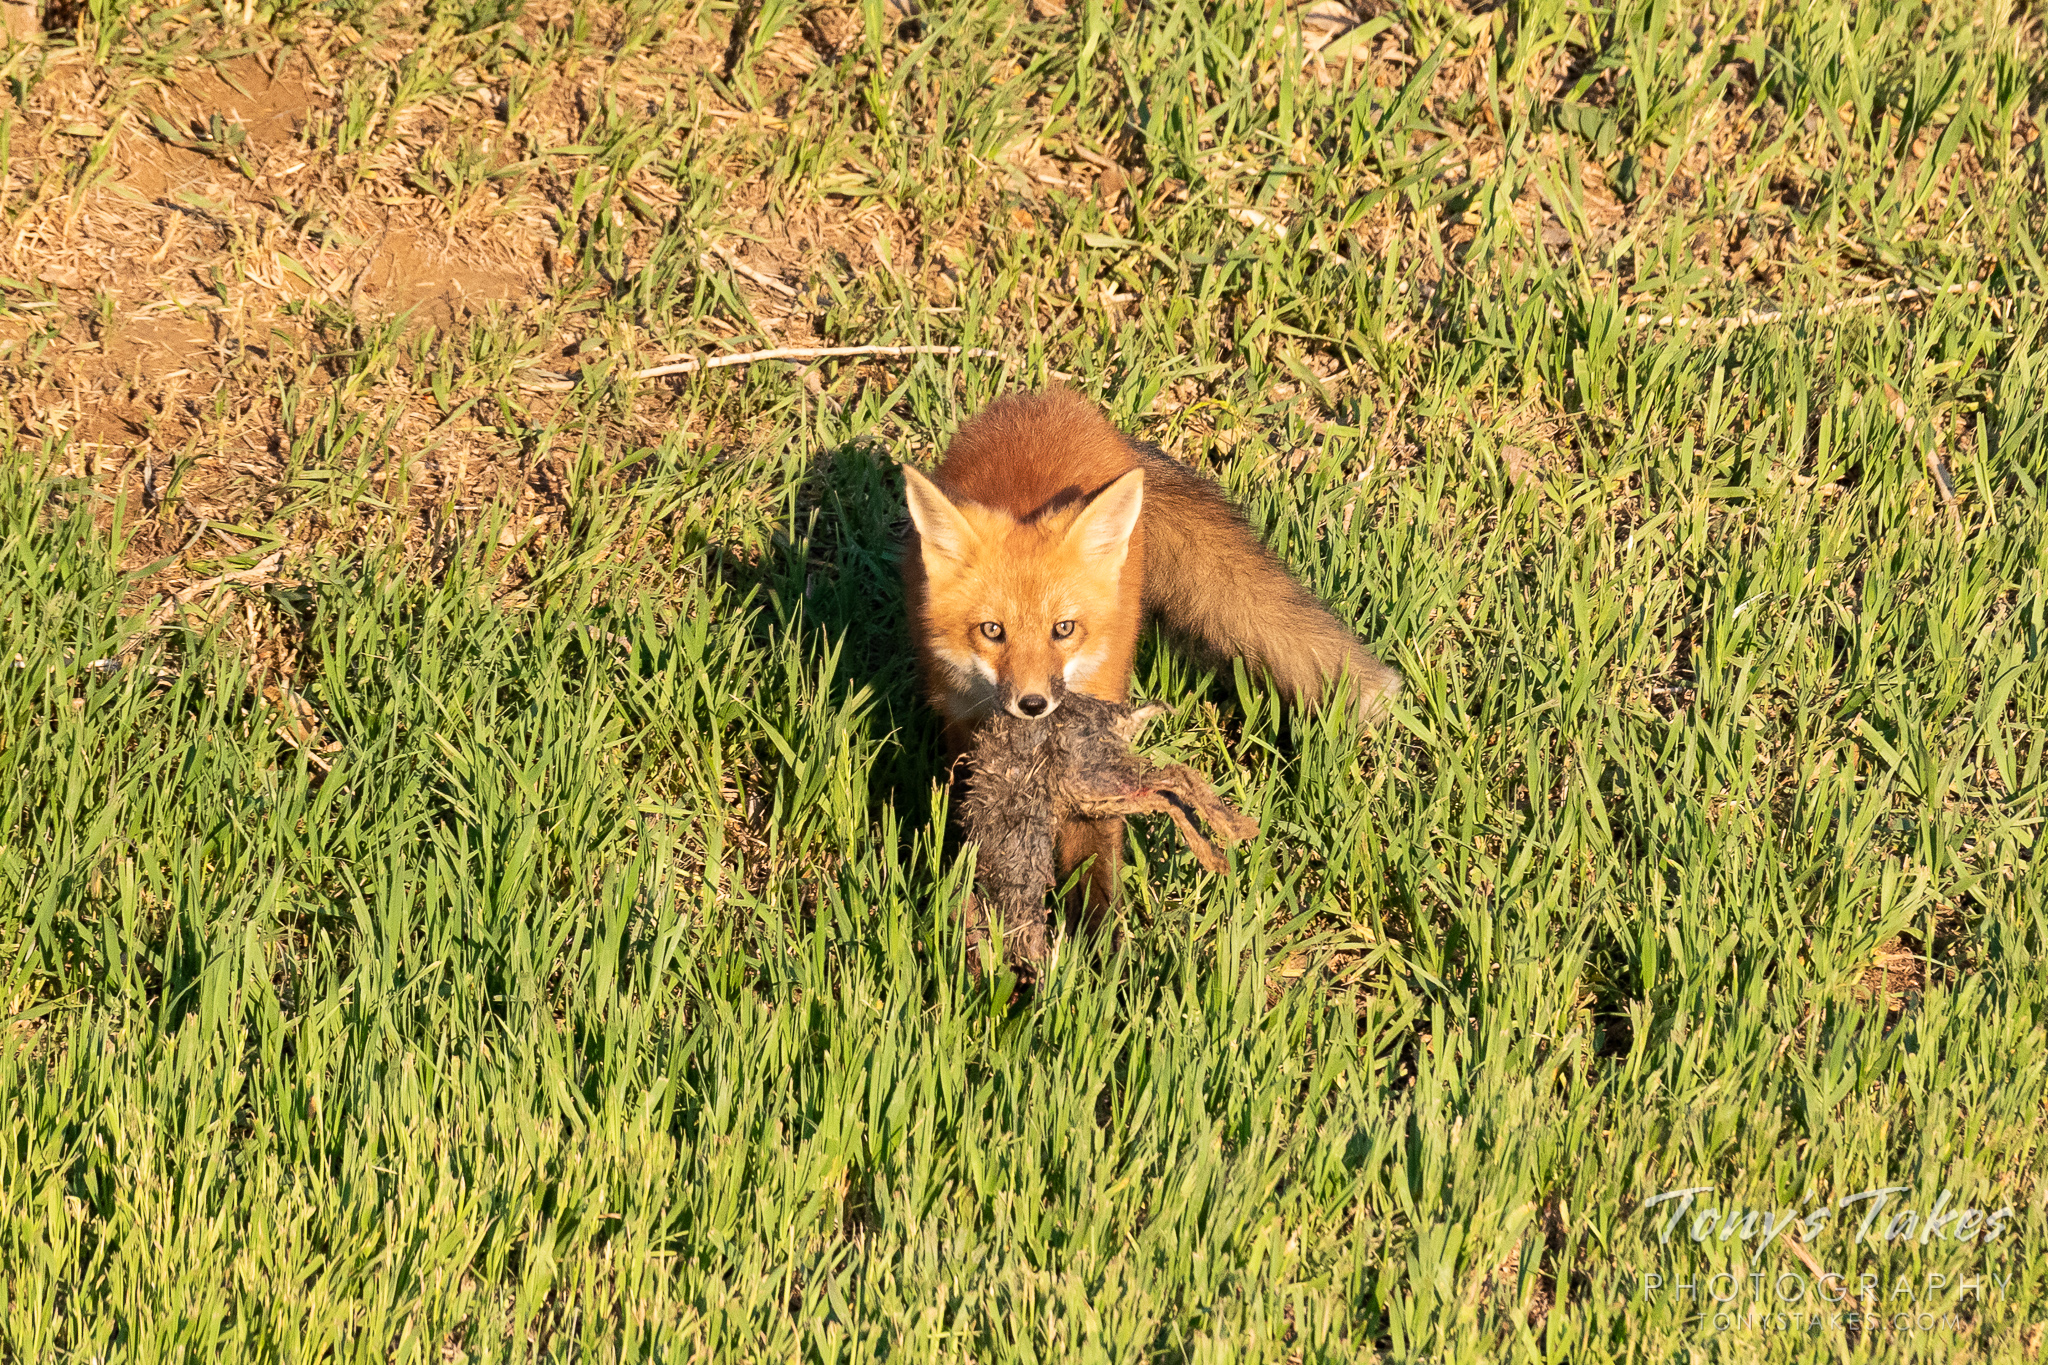 A fox kit and its rabbit dinner. (© Tony's Takes)